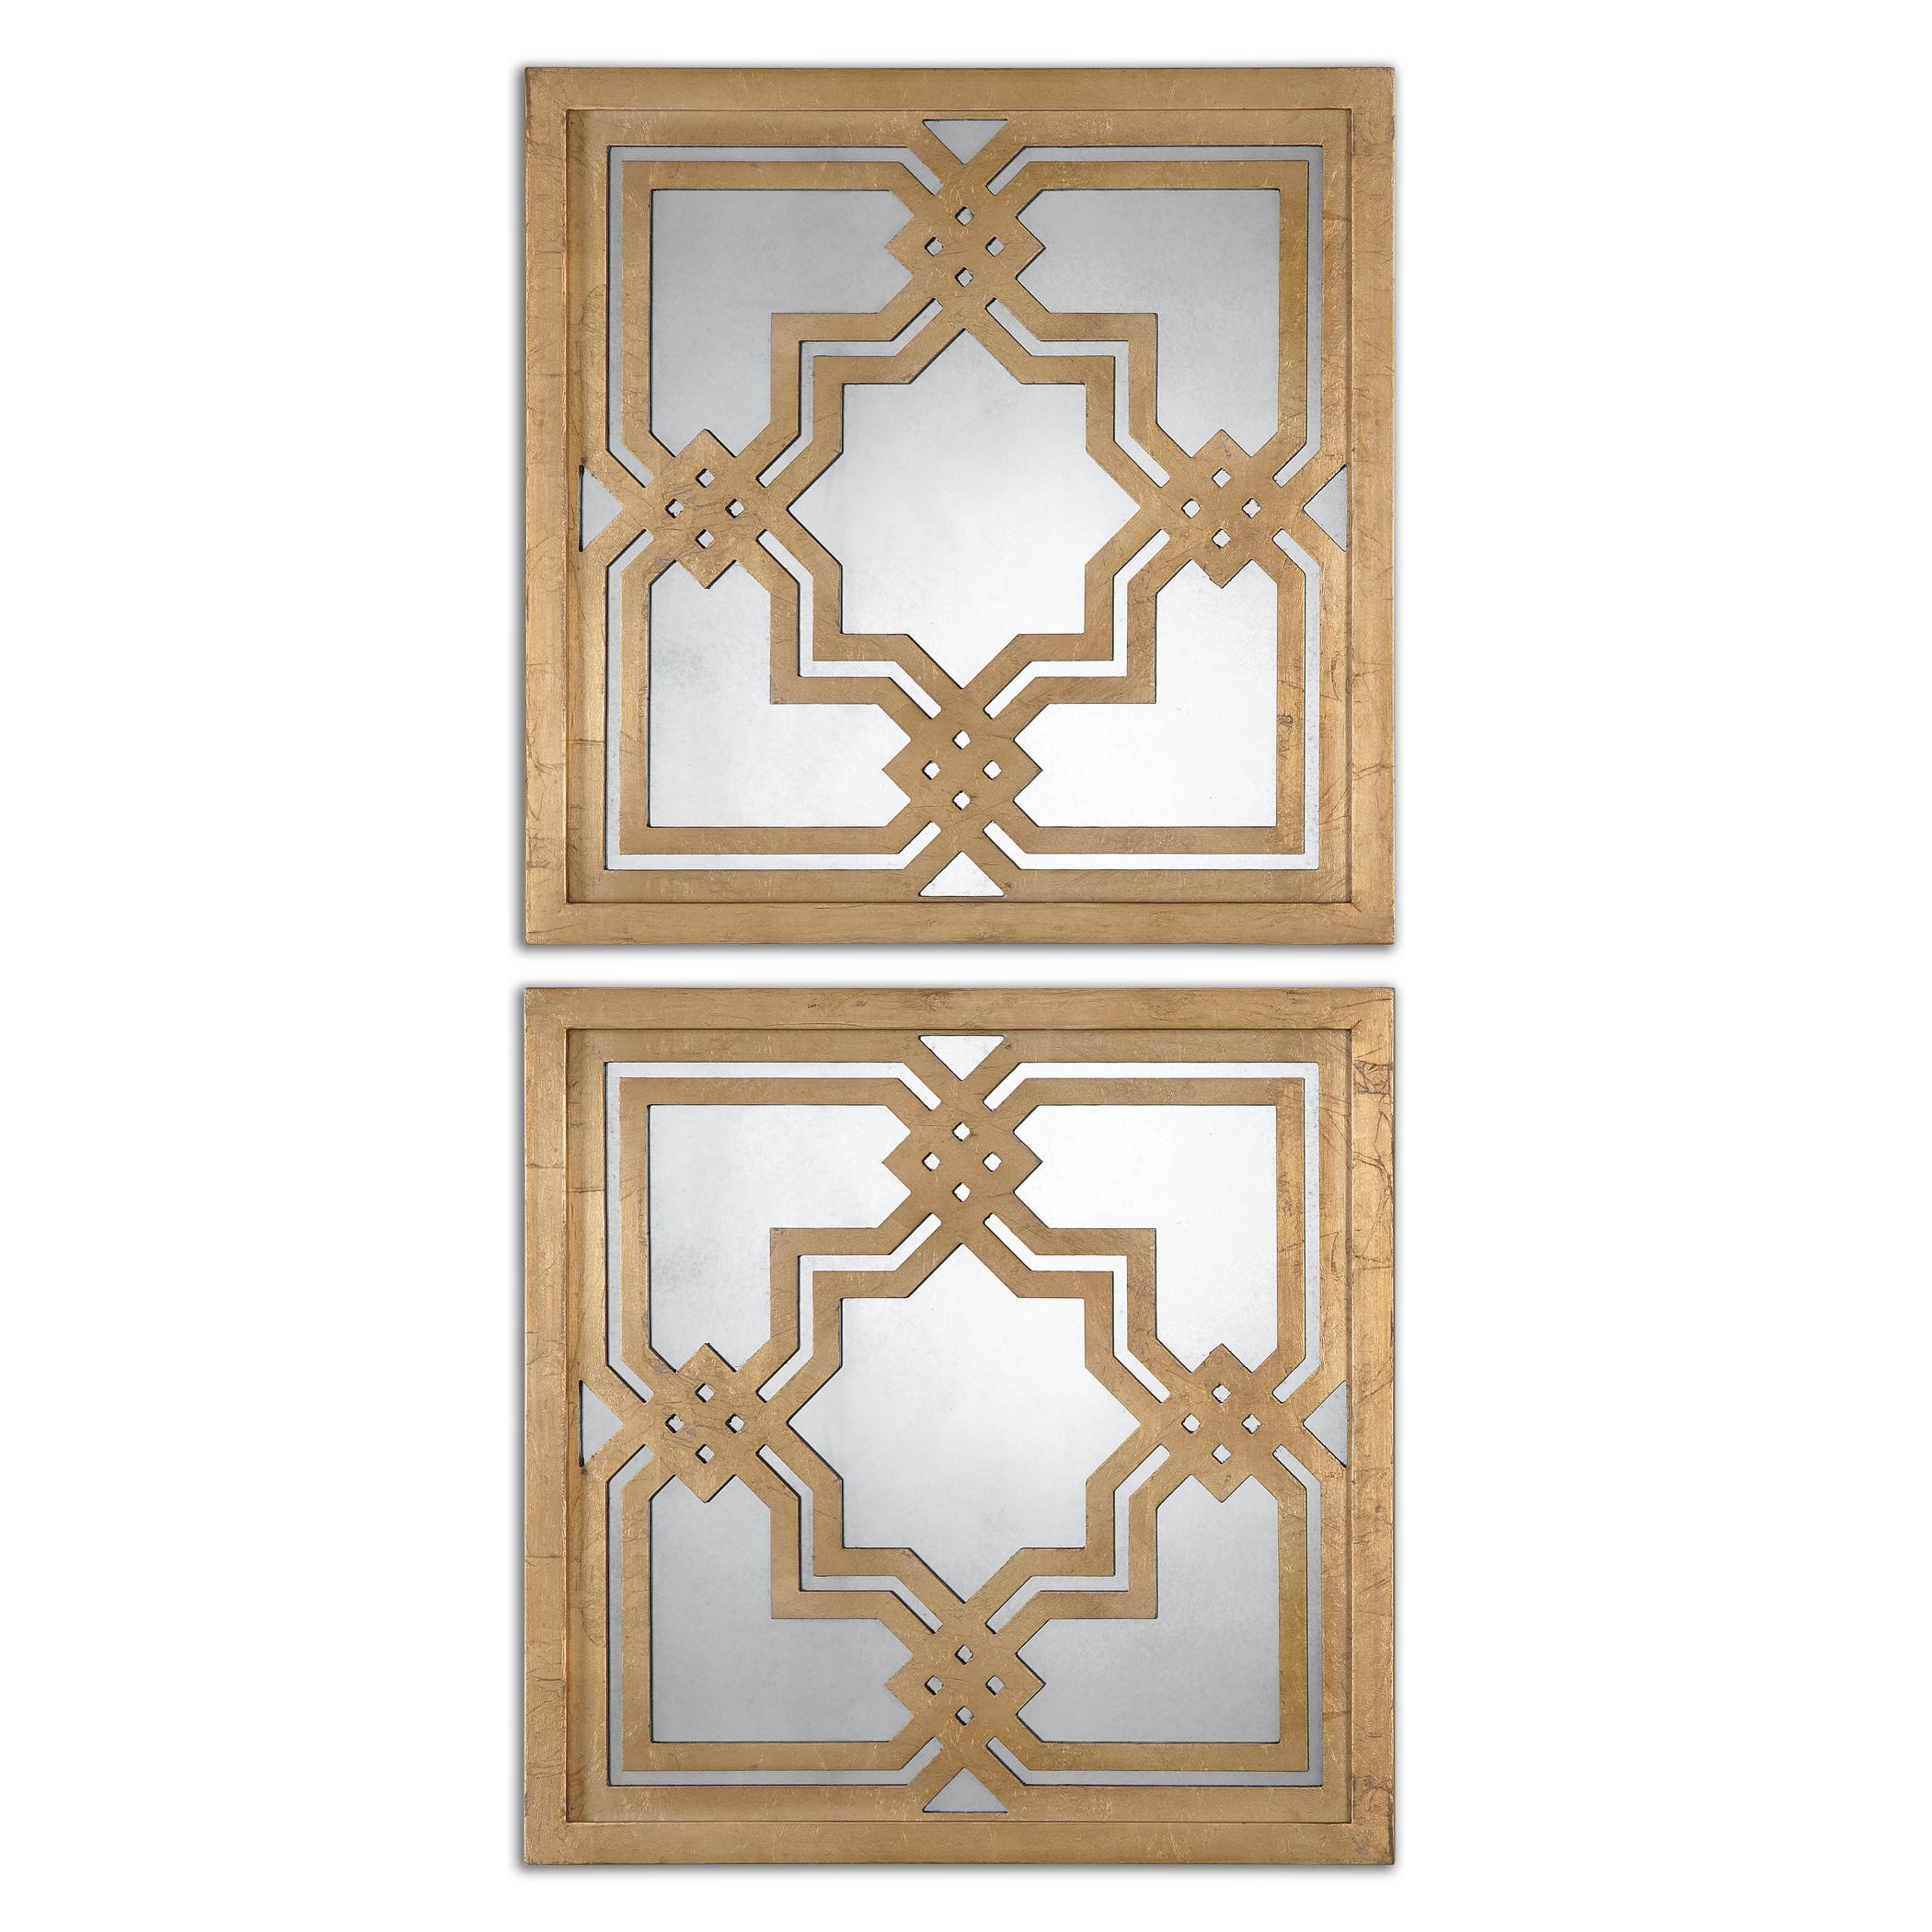 Uttermost Mirrors Piazzale Gold Square Mirrors Set of 2 - Item Number: 13865